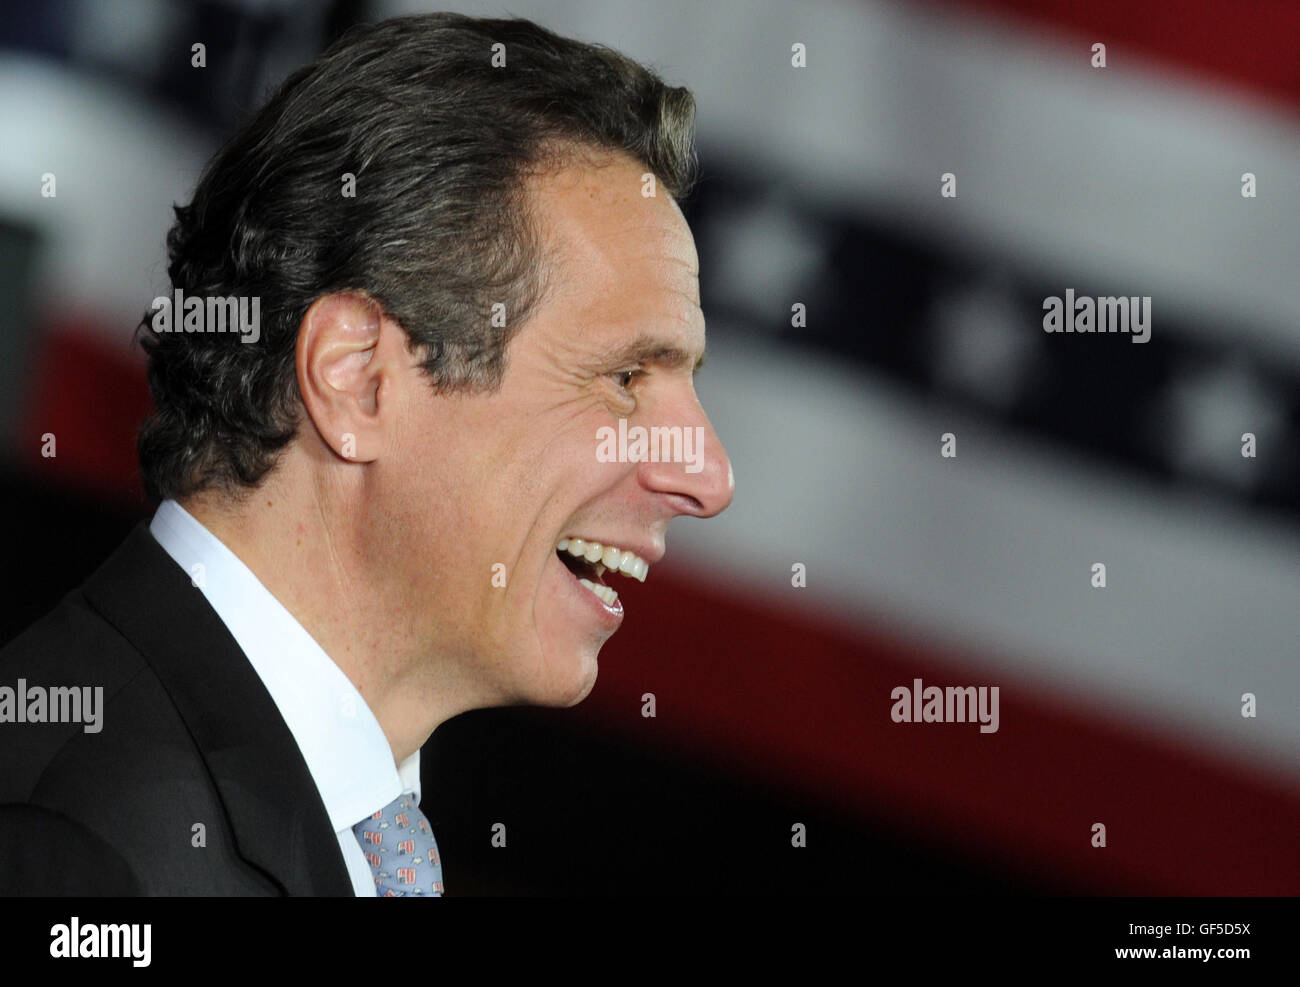 NEW YORK, NY - OCTOBER 25: Andrew Cuomo speaking at the Pathways in Technology Early College High School in the - Stock Image